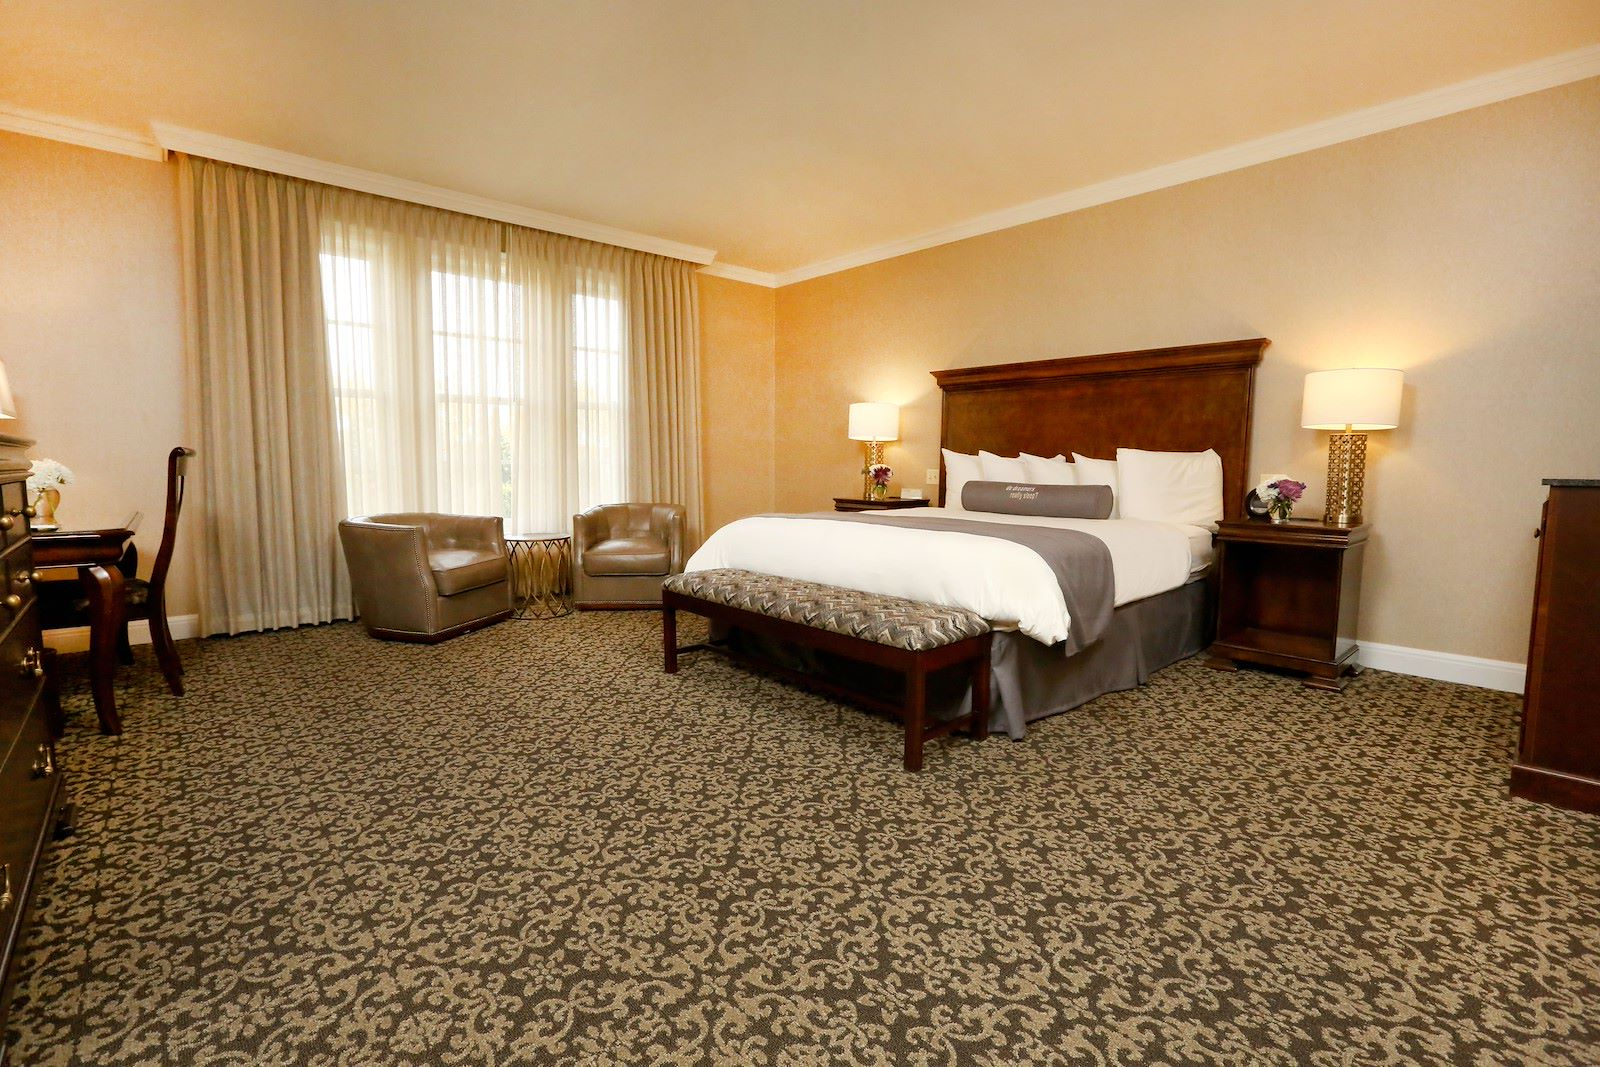 Luxury King Room at Royal Park Hotel